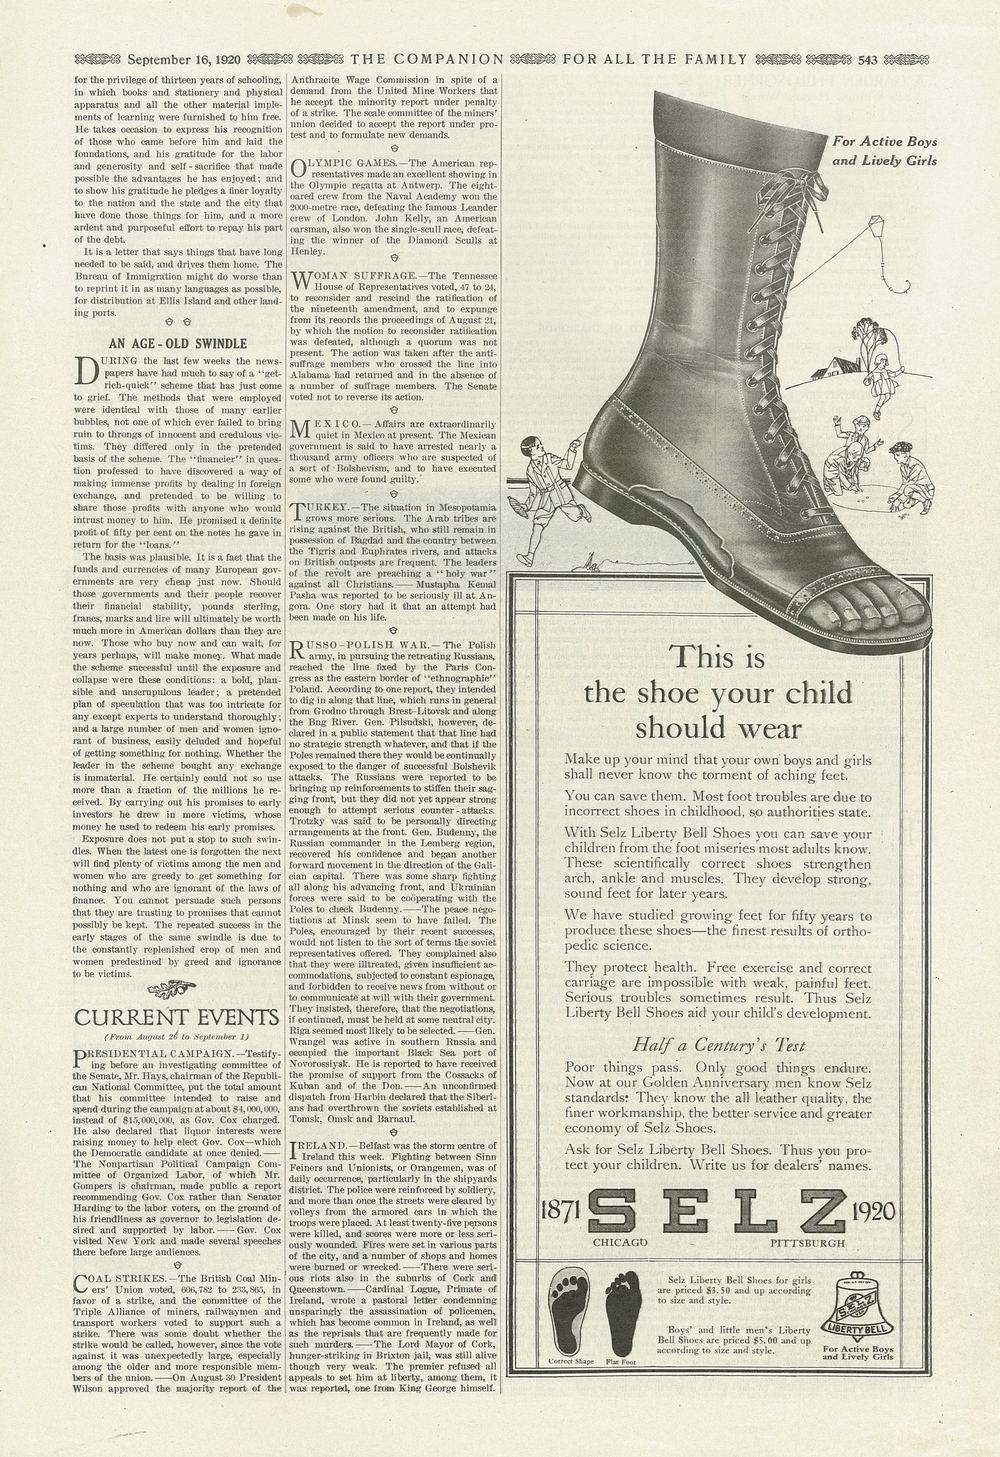 The Youth's Companion - September 16th, 1920 - Vol. 94 - No. 38